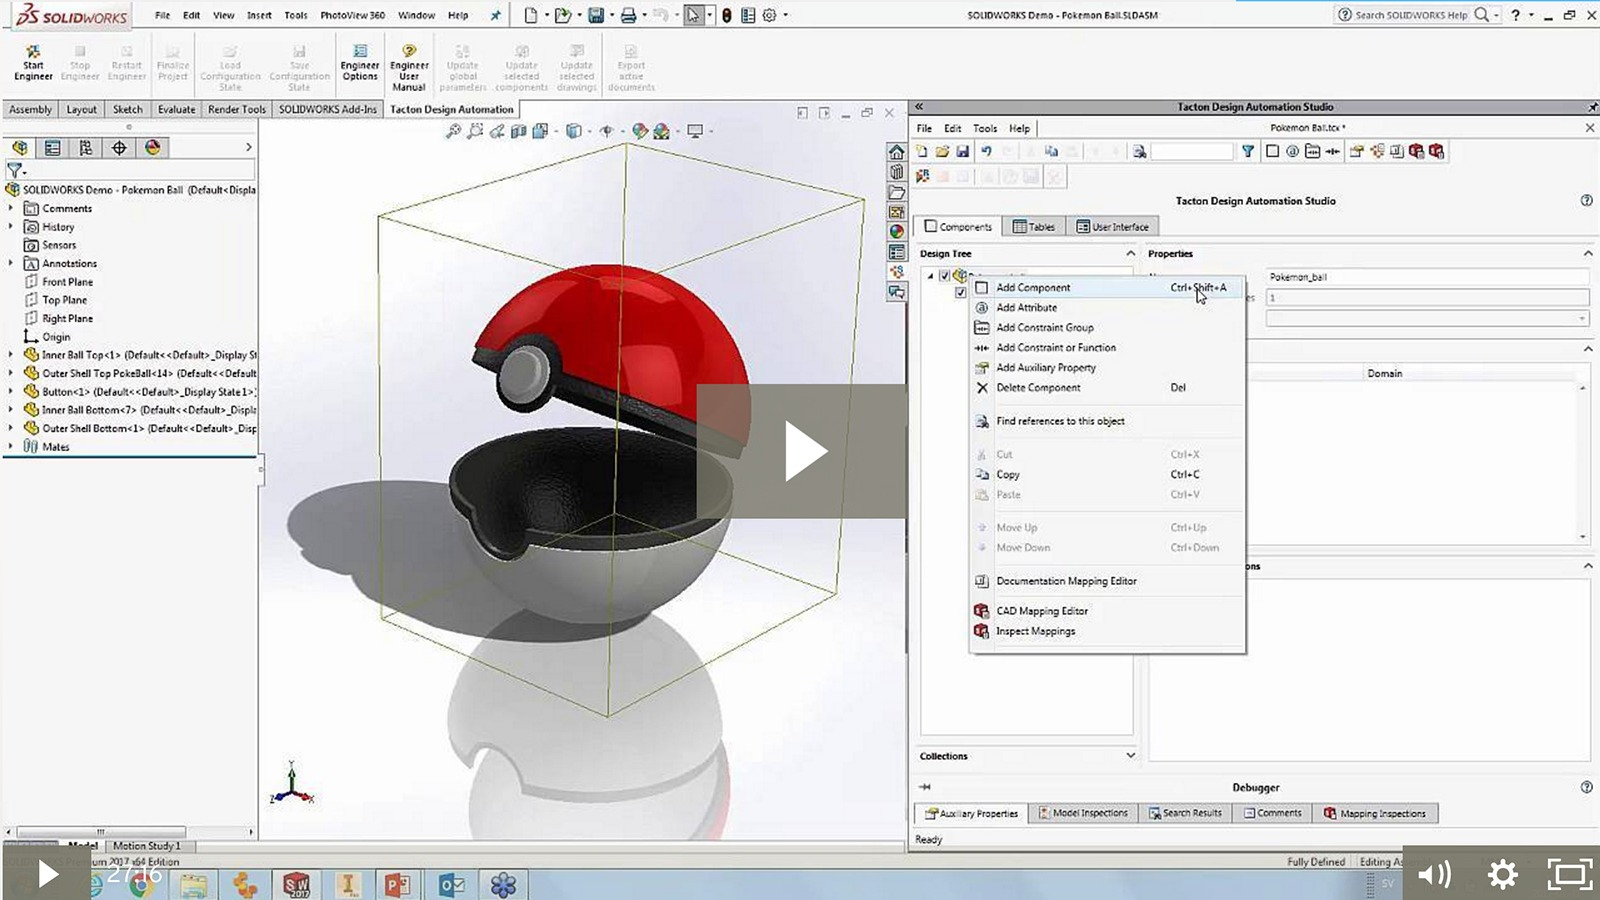 Introduction to Tacton Design Automation for SOLIDWORKS | Tacton